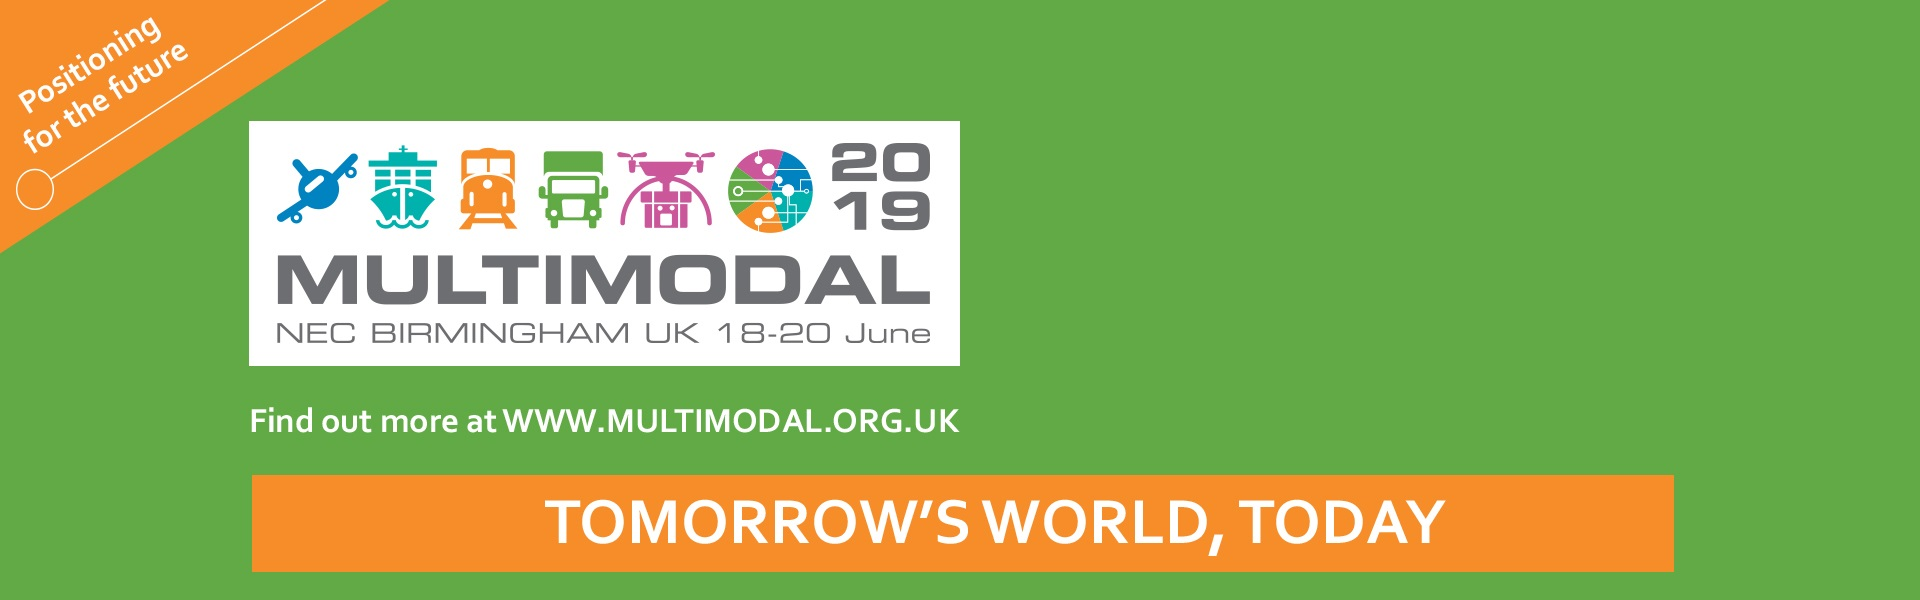 FTA supports MULTIMODAL 2019